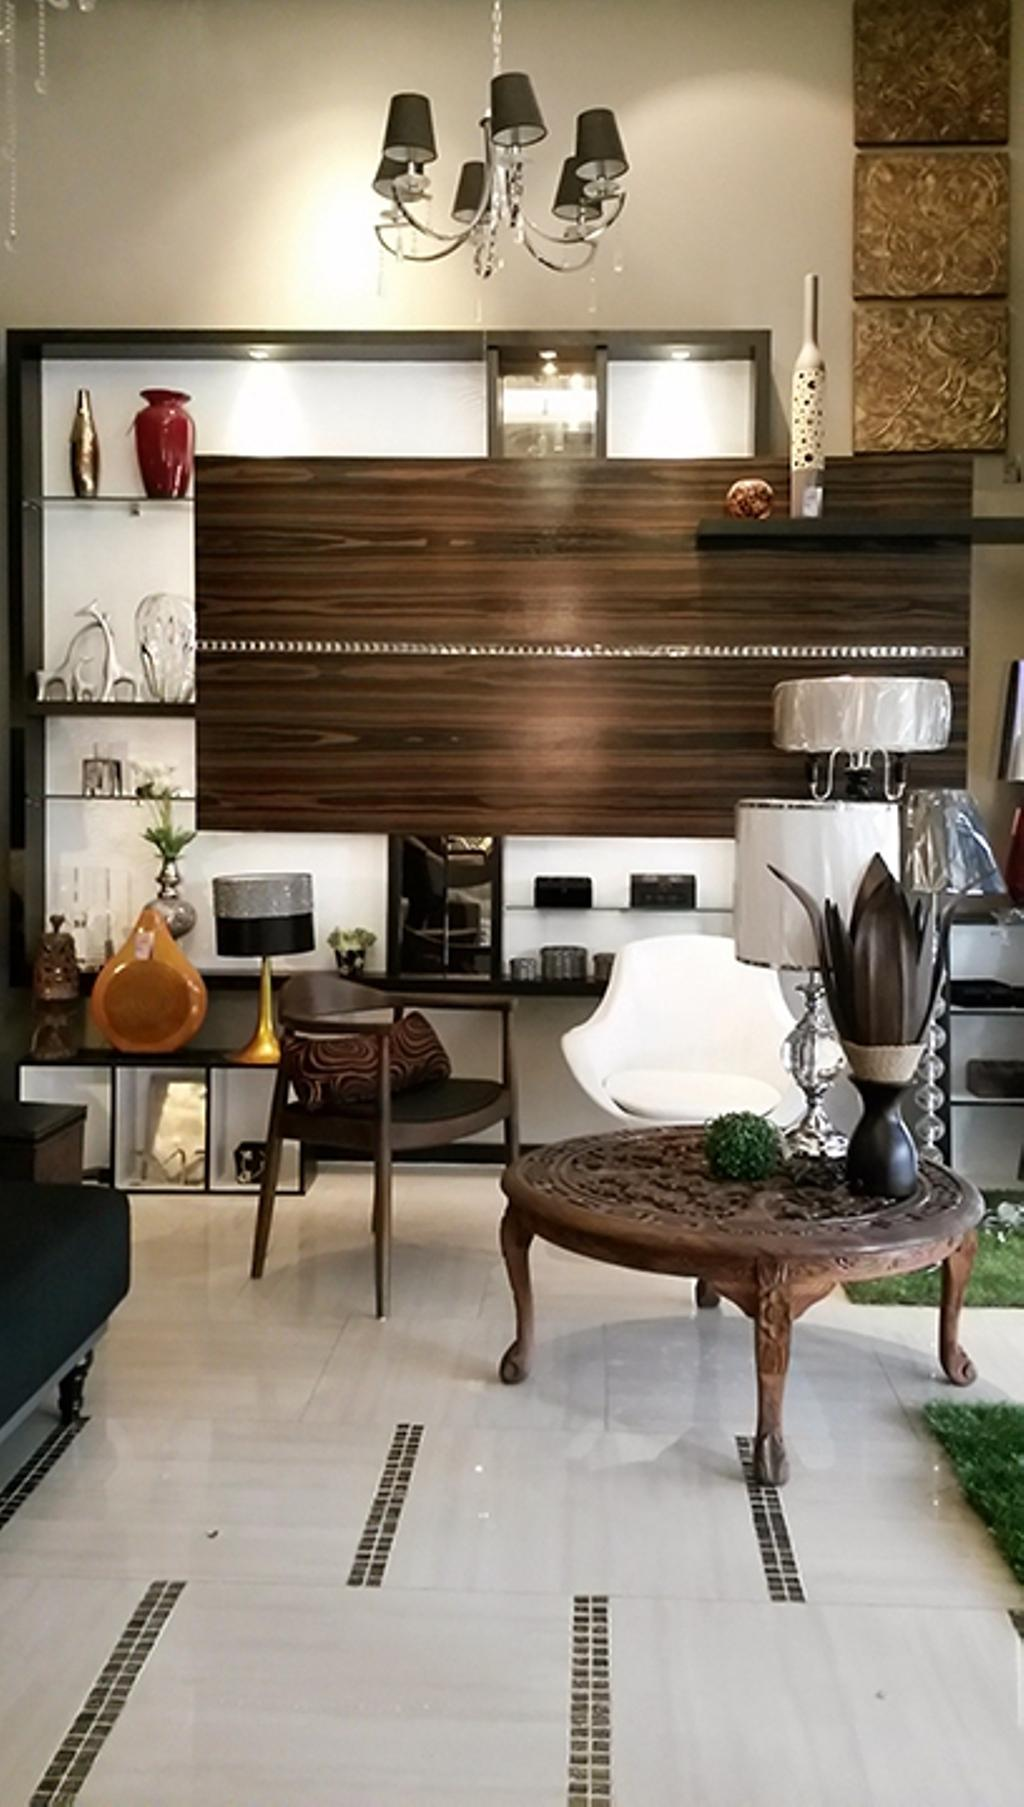 The Arch Showroom, Commercial, Interior Designer, The Arch, Contemporary, Flora, Jar, Plant, Potted Plant, Pottery, Vase, Furniture, Dining Table, Table, Dining Room, Indoors, Interior Design, Room, Apartment, Building, Housing, Loft